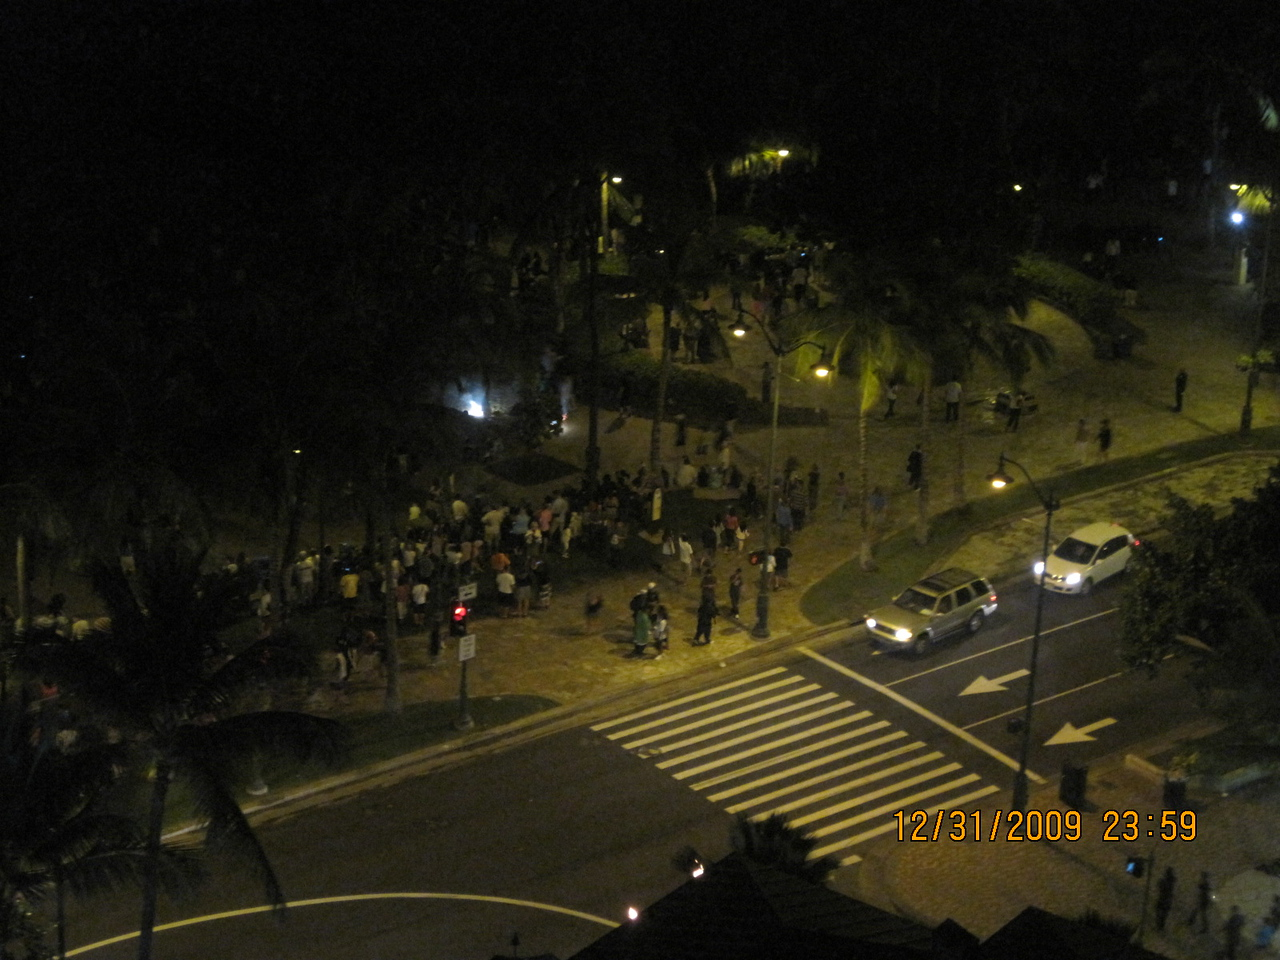 almost New Year.. people rushing to beach to watch fireworks.